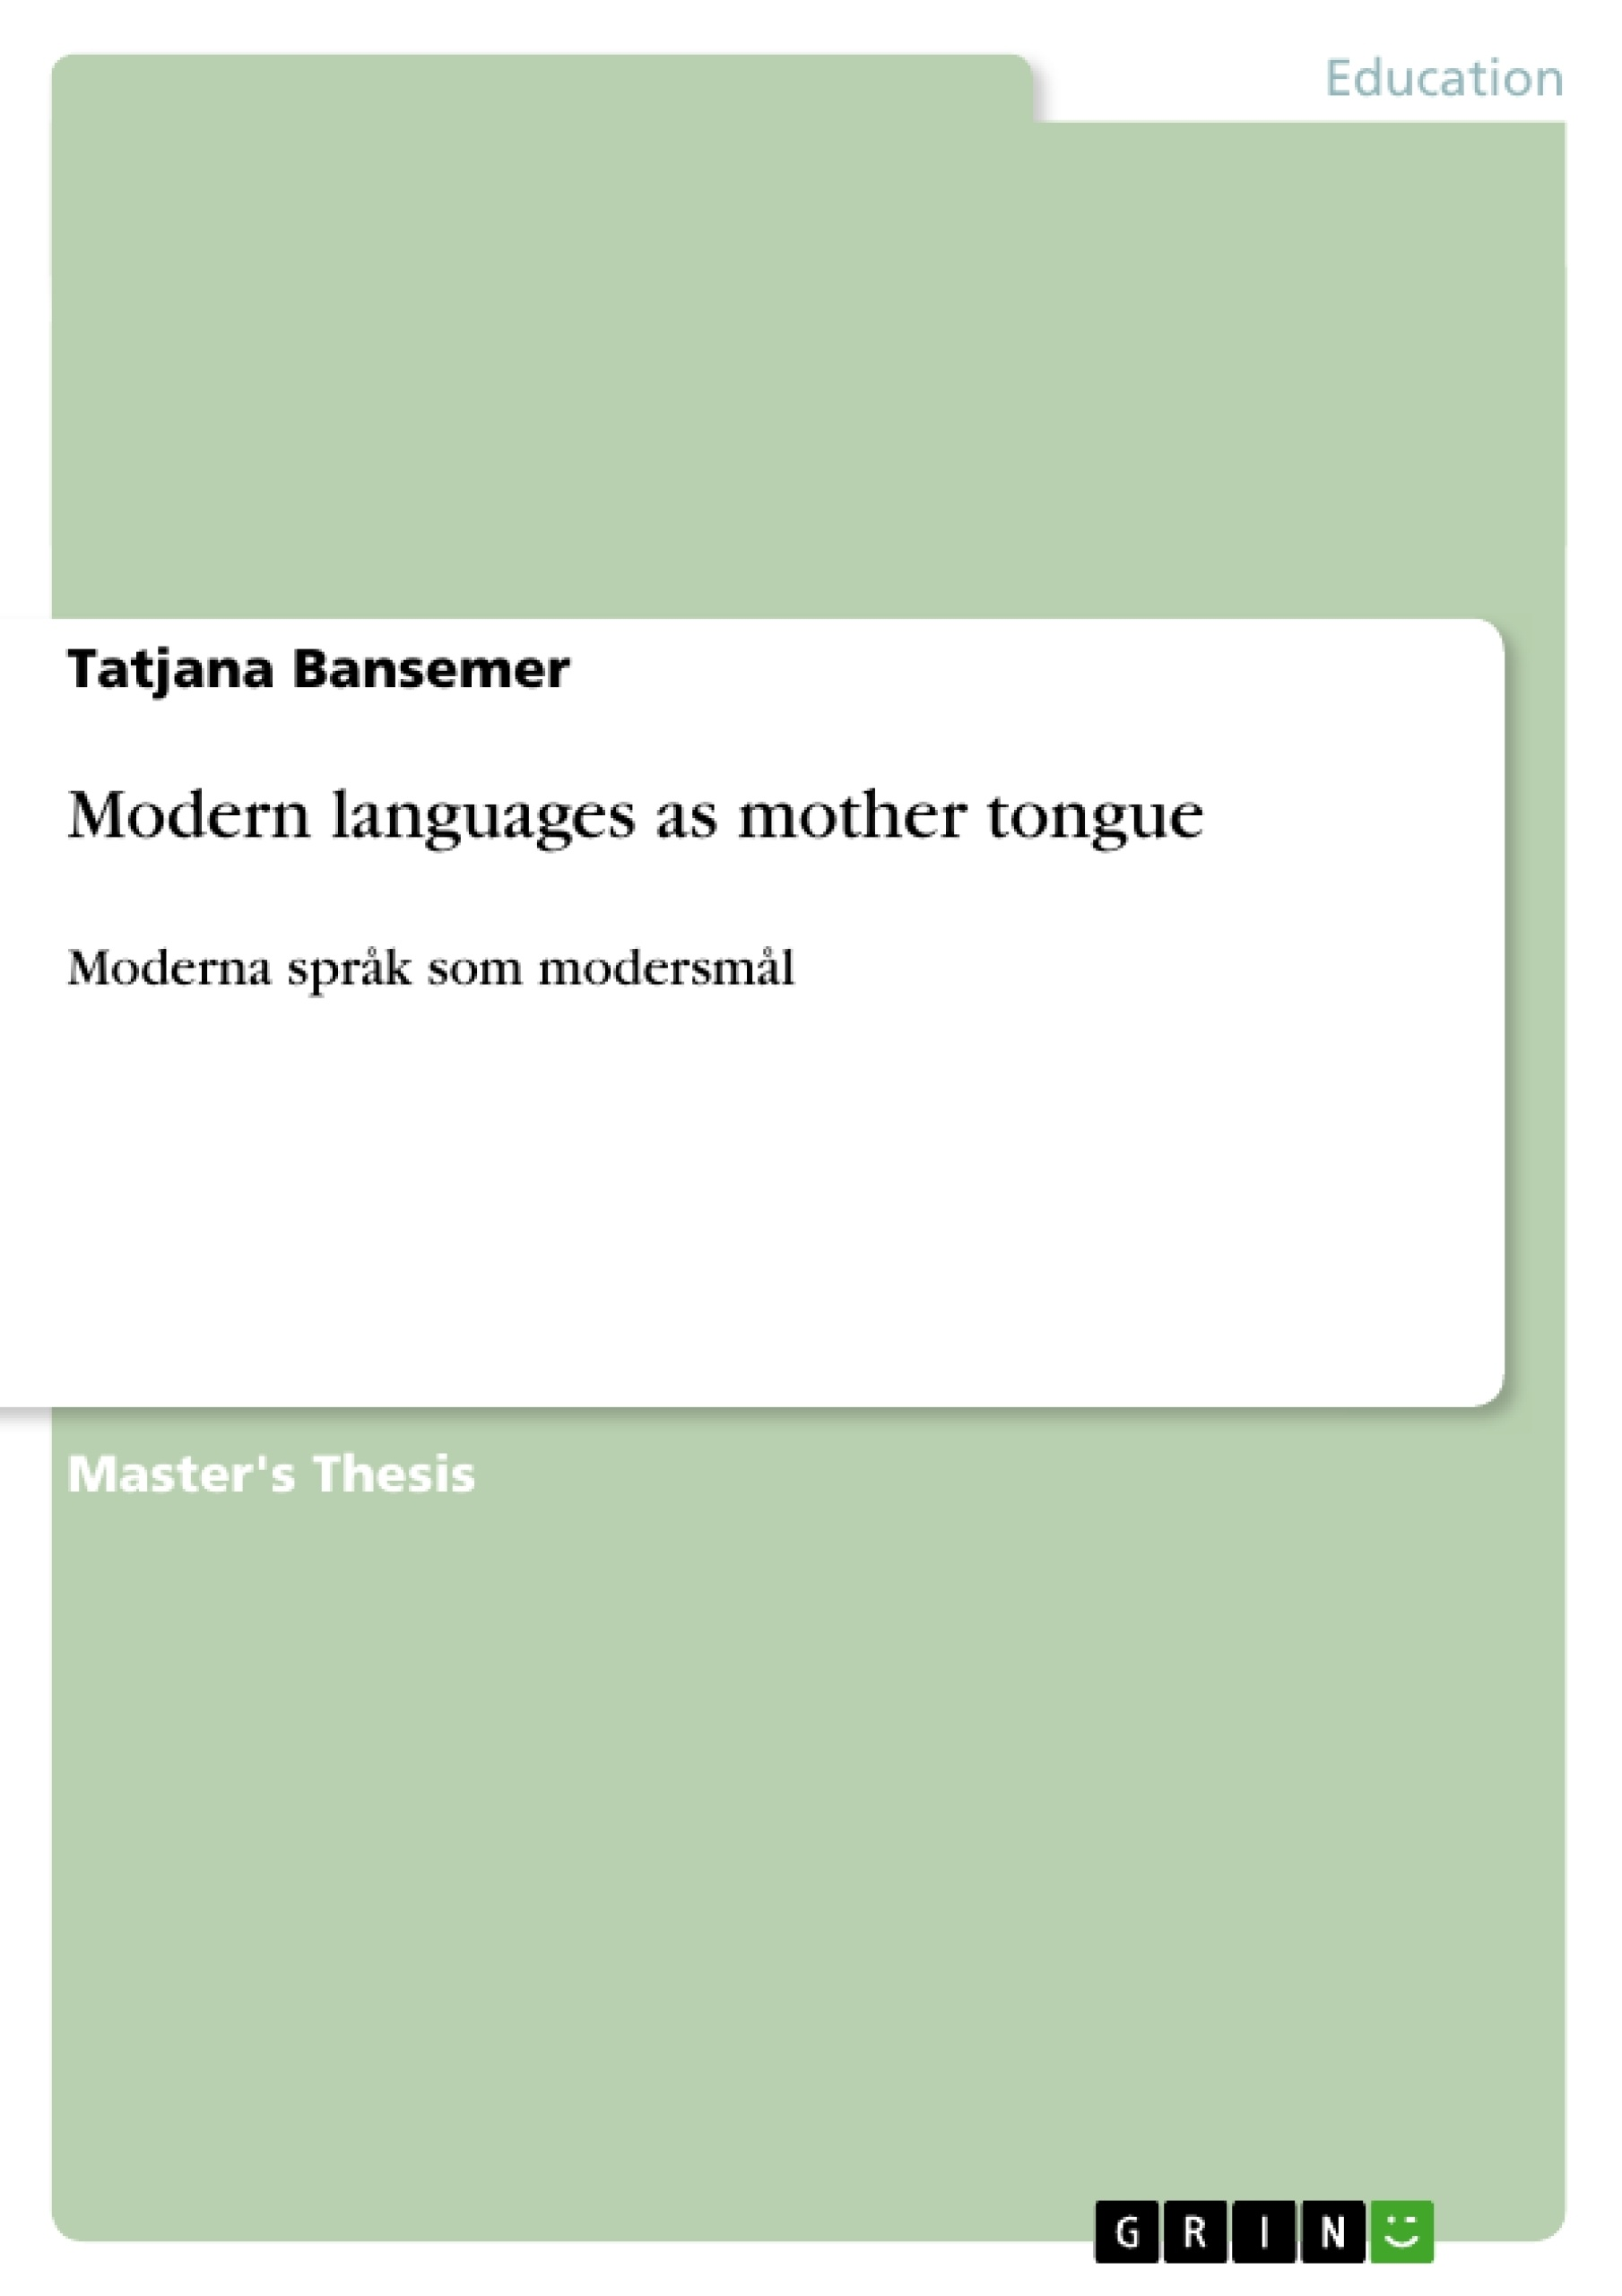 Title: Modern languages as mother tongue